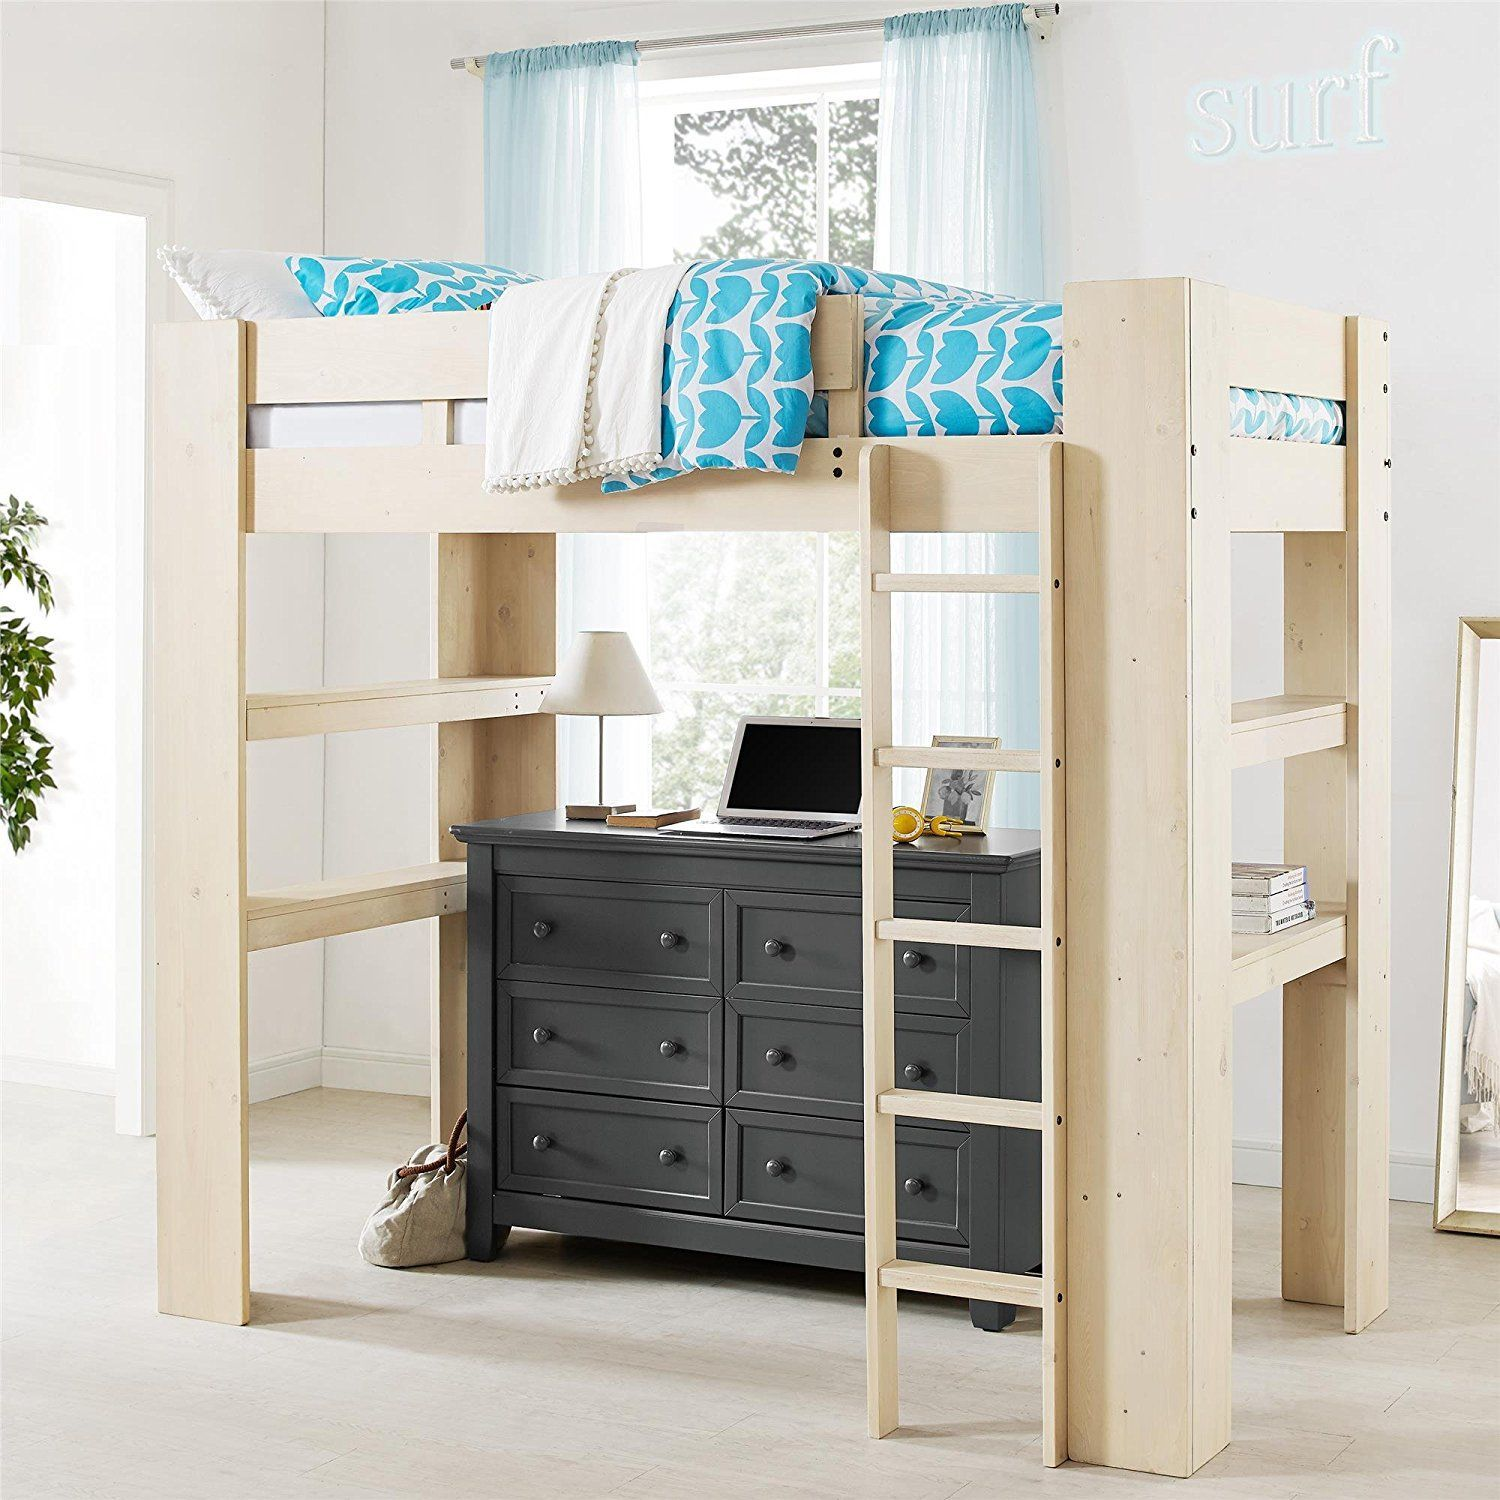 17 Best Loft Beds To Buy Loft Beds Buying Guide 2020 My